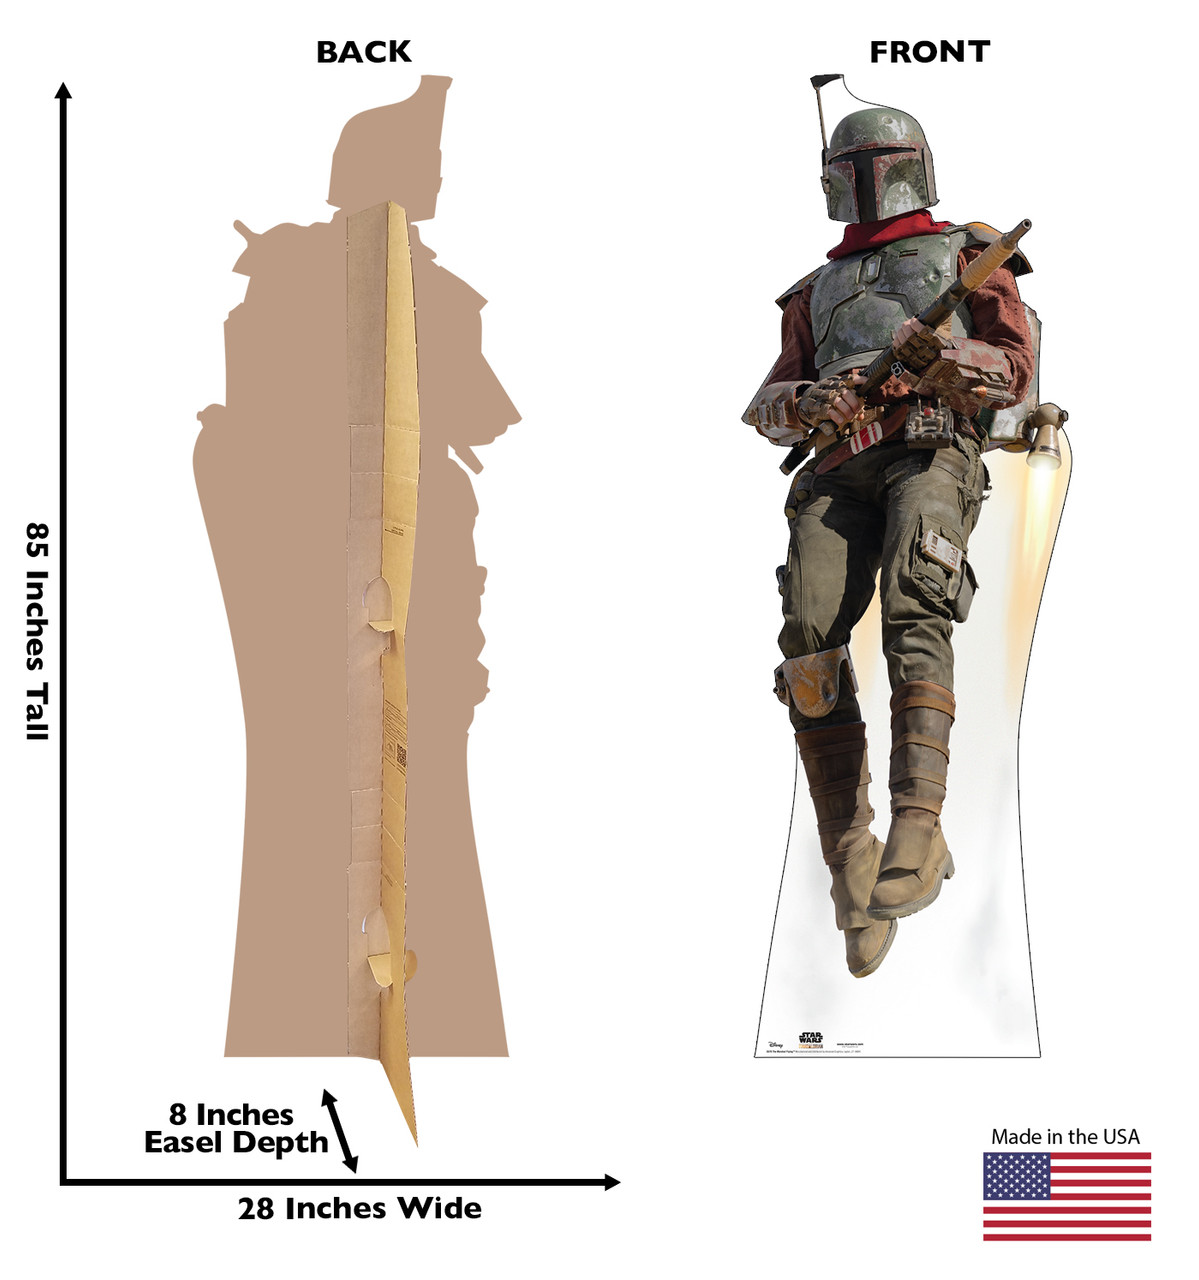 Life-size cardboard standee of The Marshal Flying with back and front dimensions.